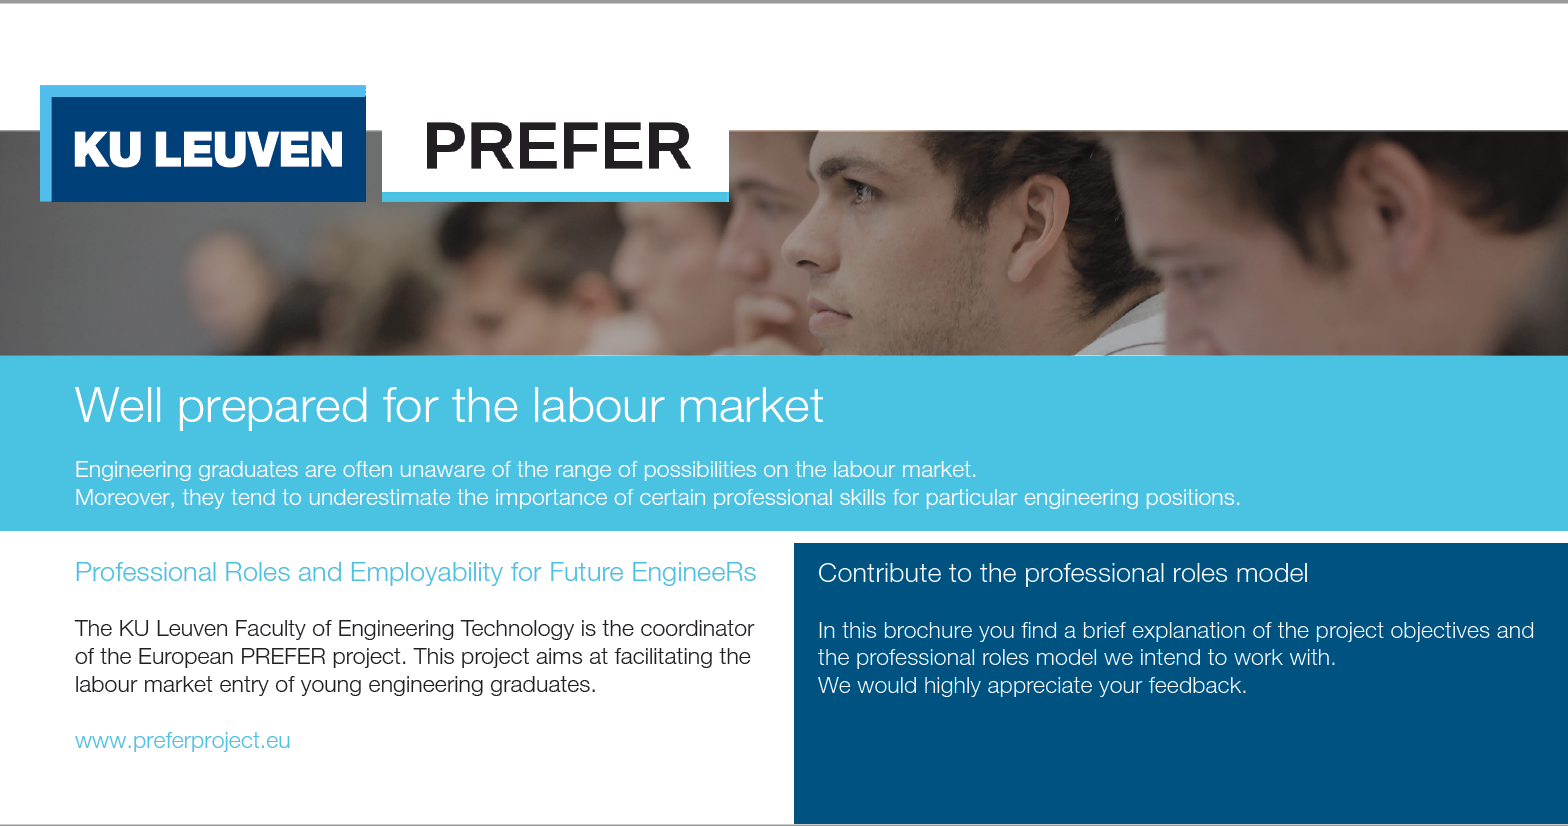 PREFER Project Tackles The Employability Of Engineering Graduates